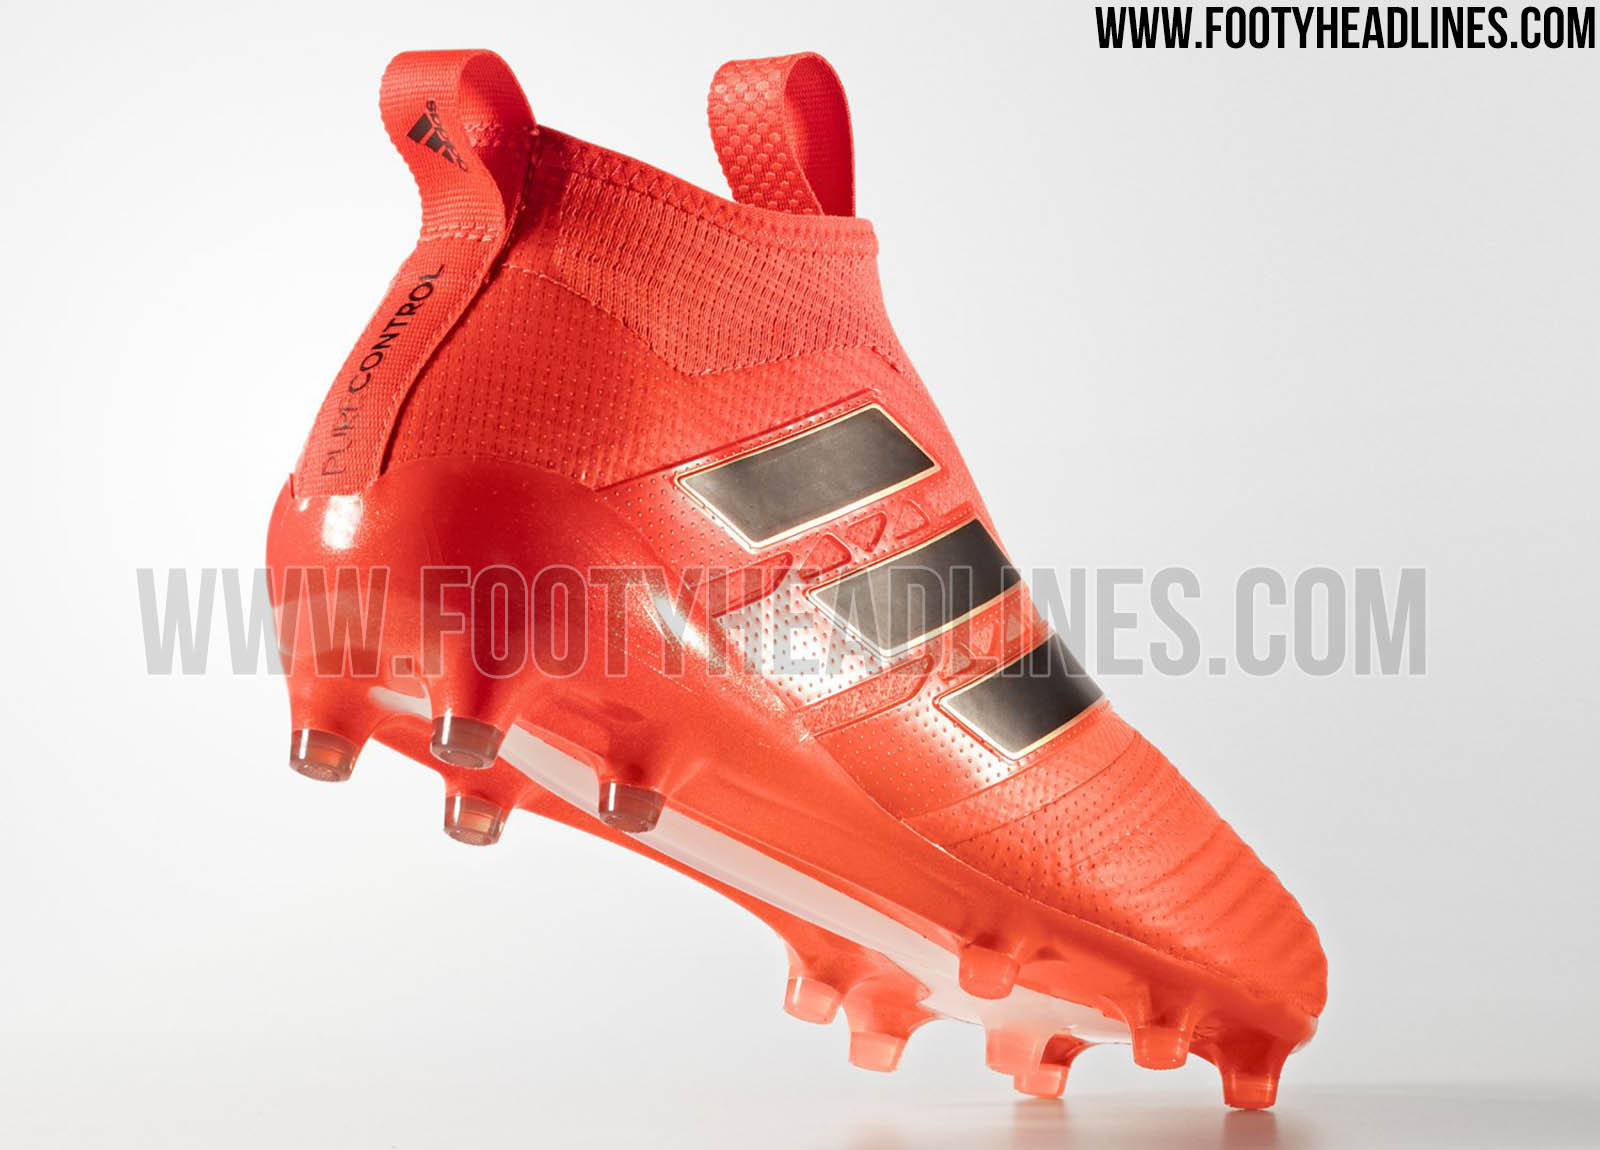 adidas 17 purecontrol. fiery - adidas ace 17+ purecontrol pyro storm boots released footy headlines 17 purecontrol